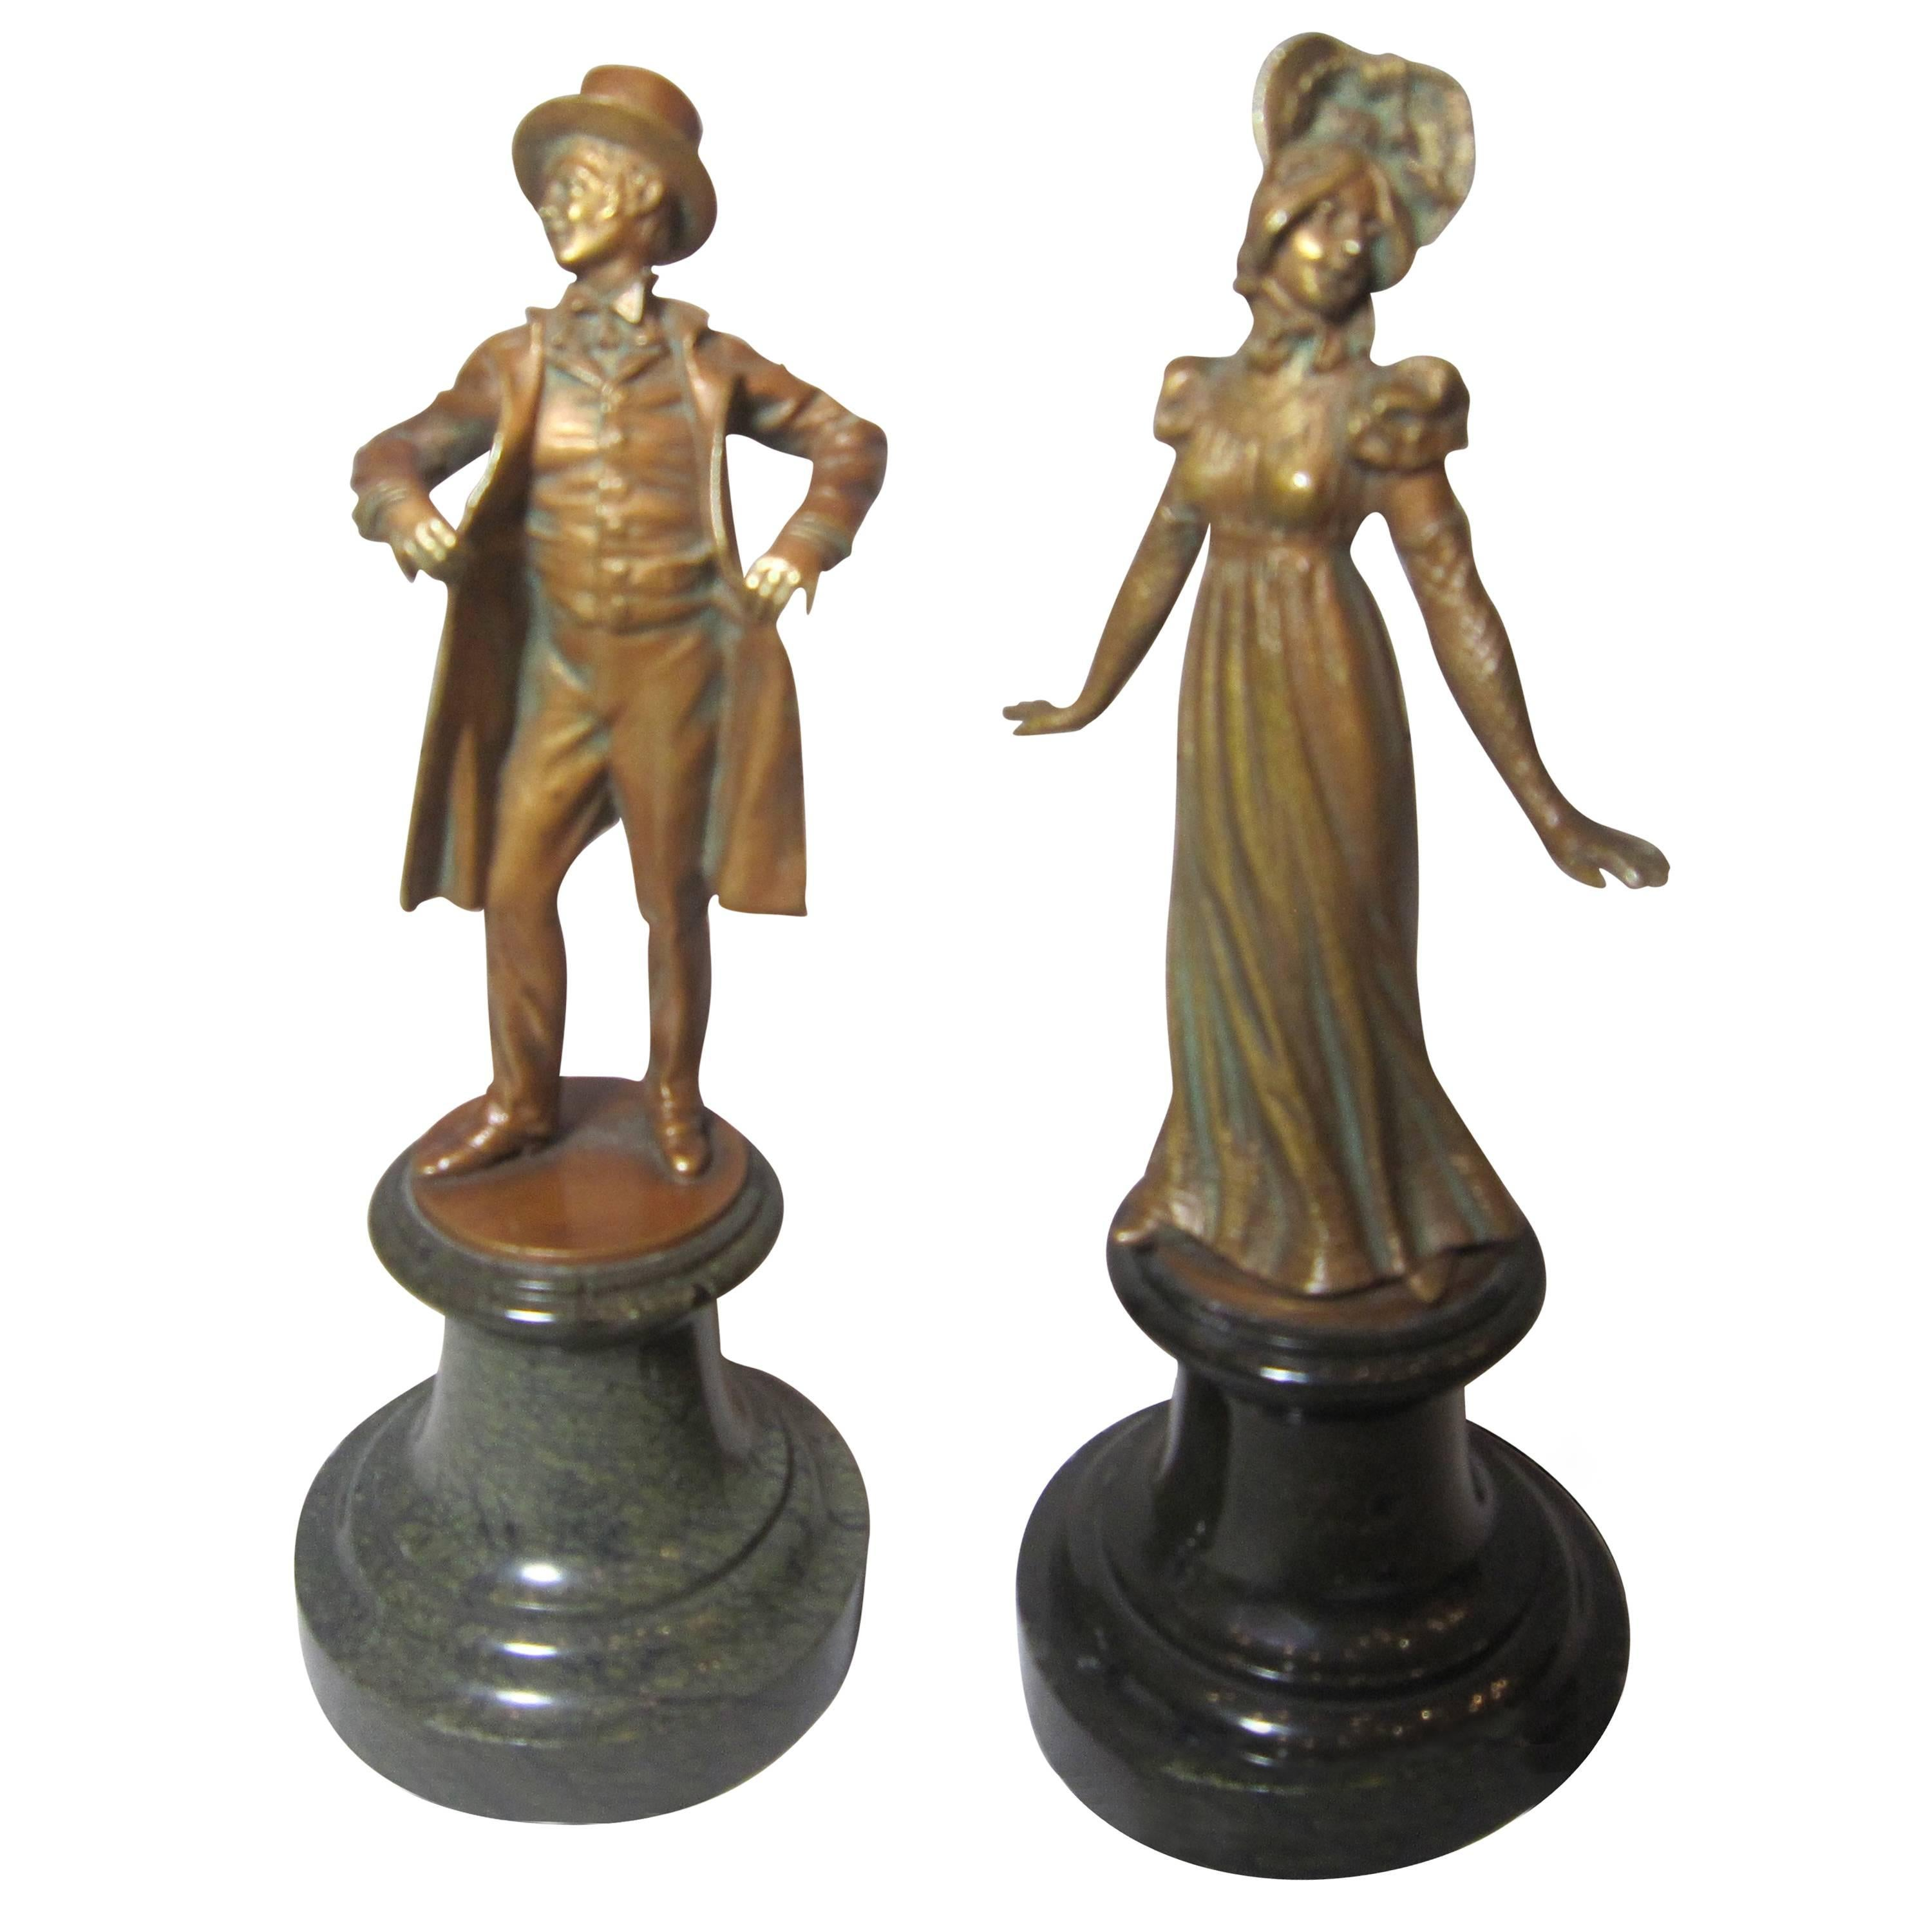 Pair of Exceptionally Detailed Bronze Statues ca. 1890